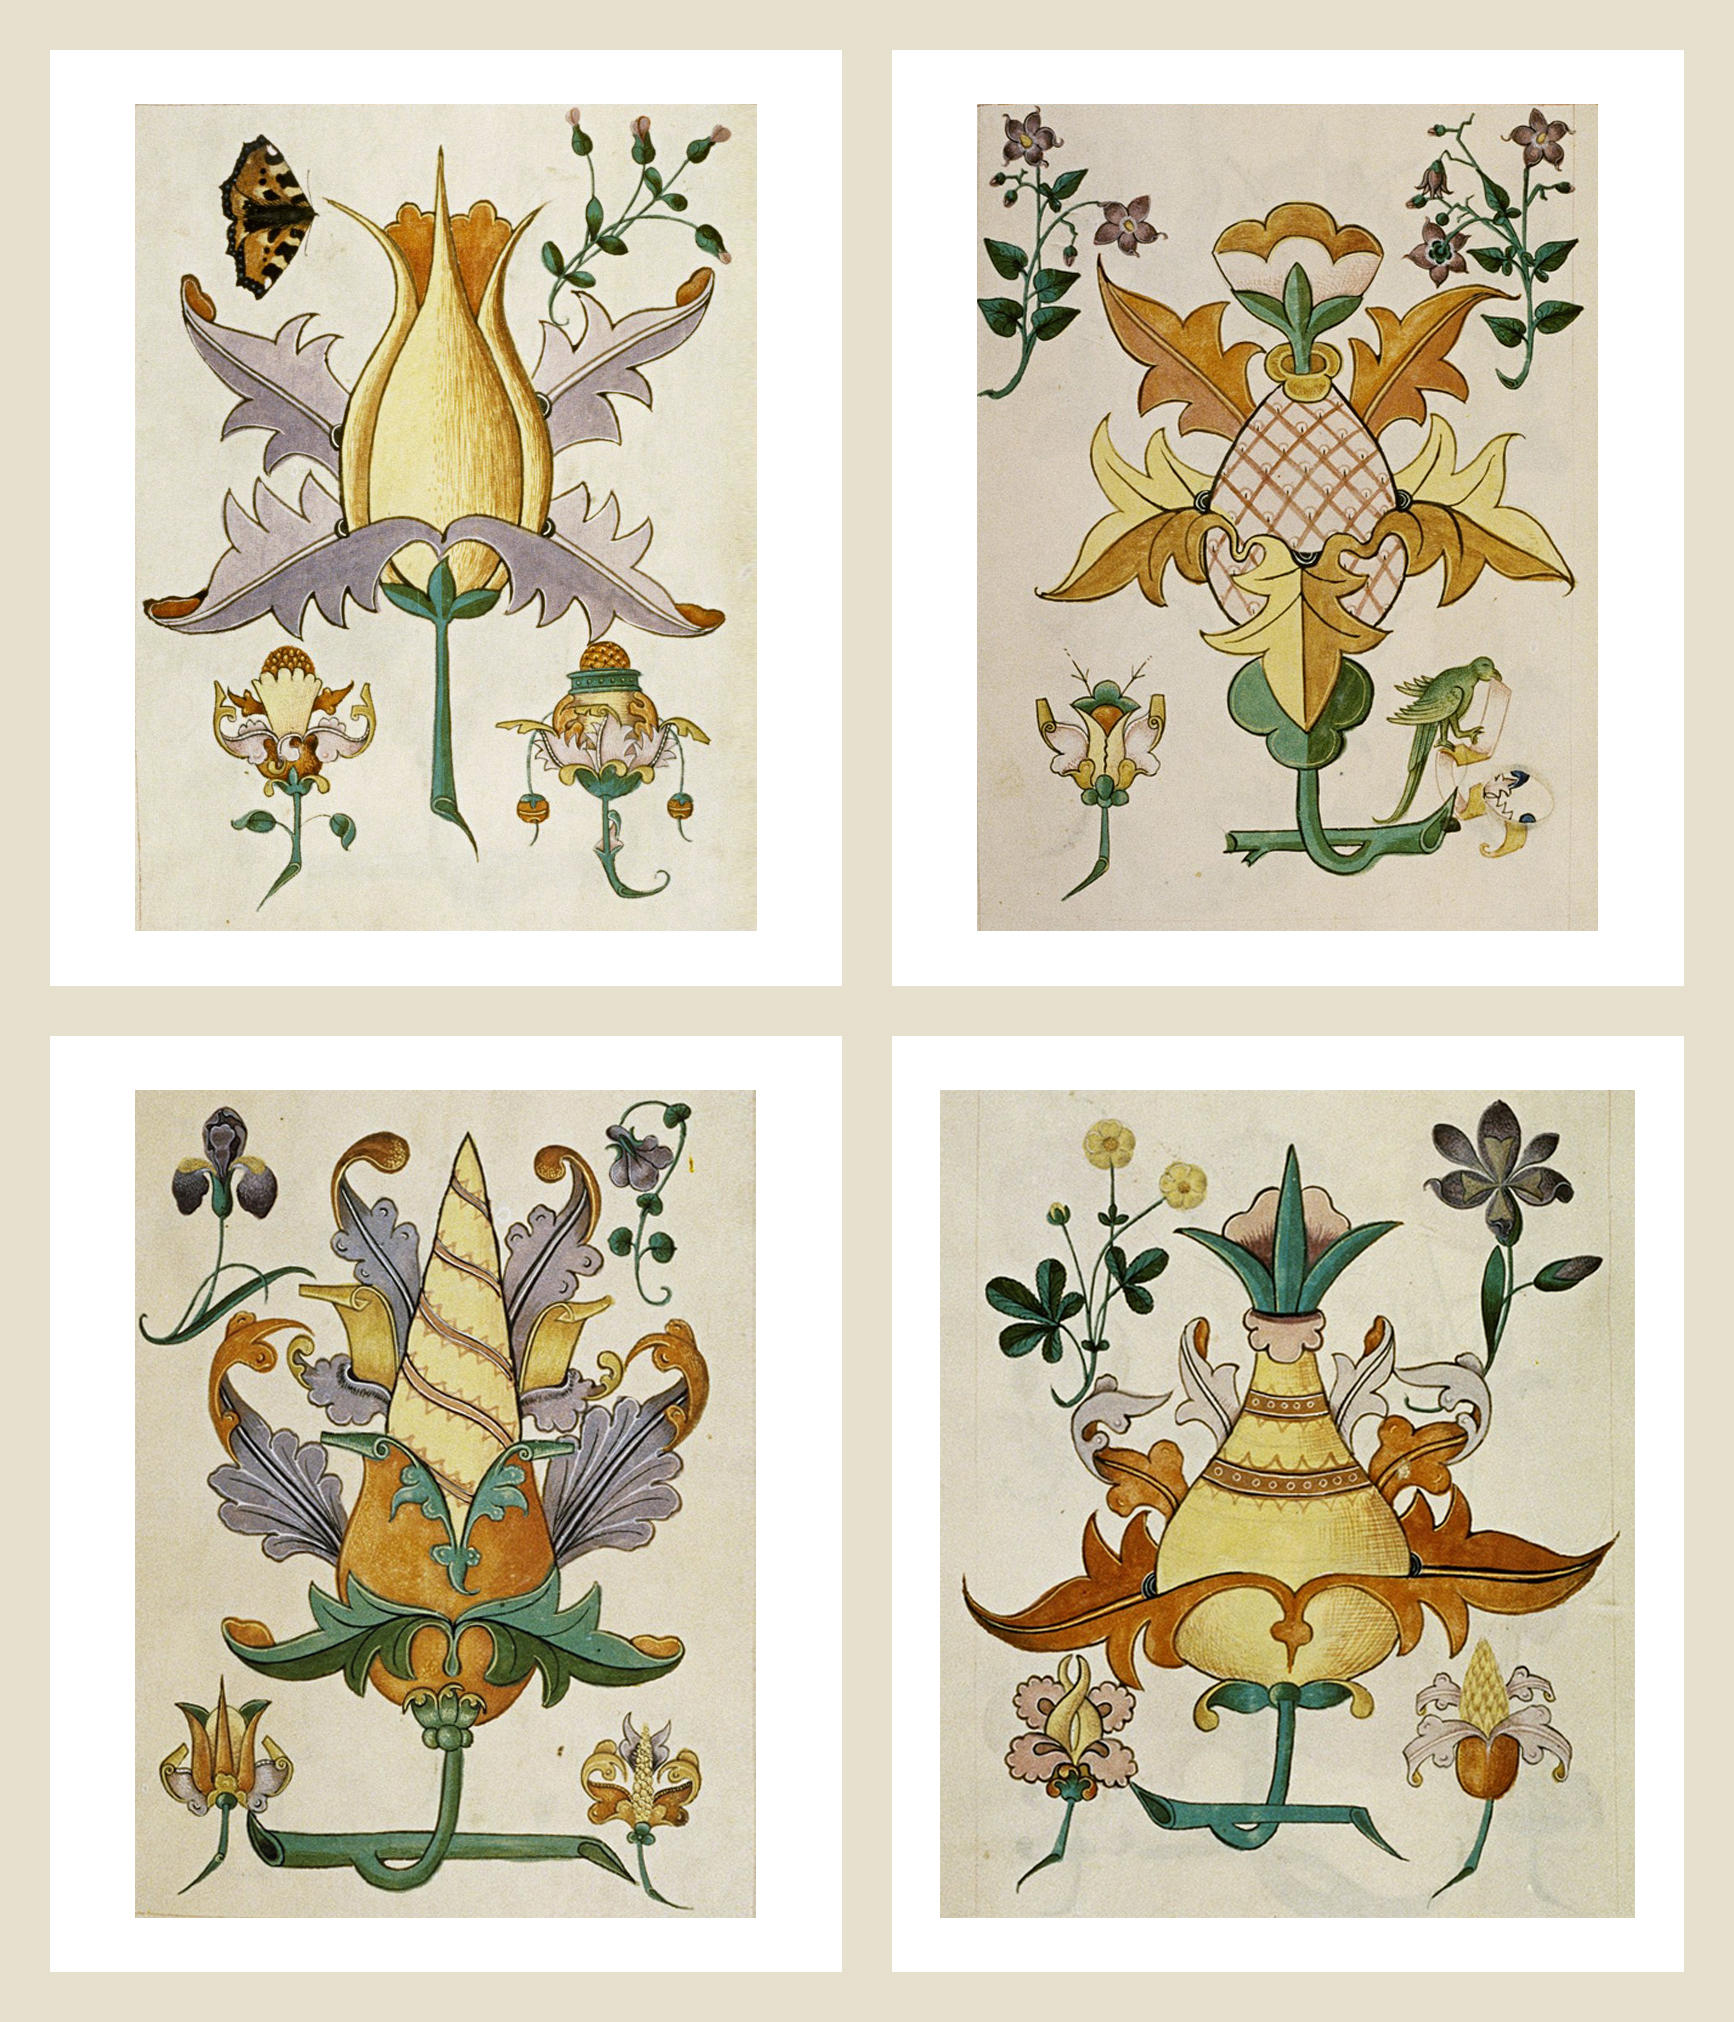 Stylized floral designs from MS. Ashmole's  Tudor Pattern Book , circa 1504.